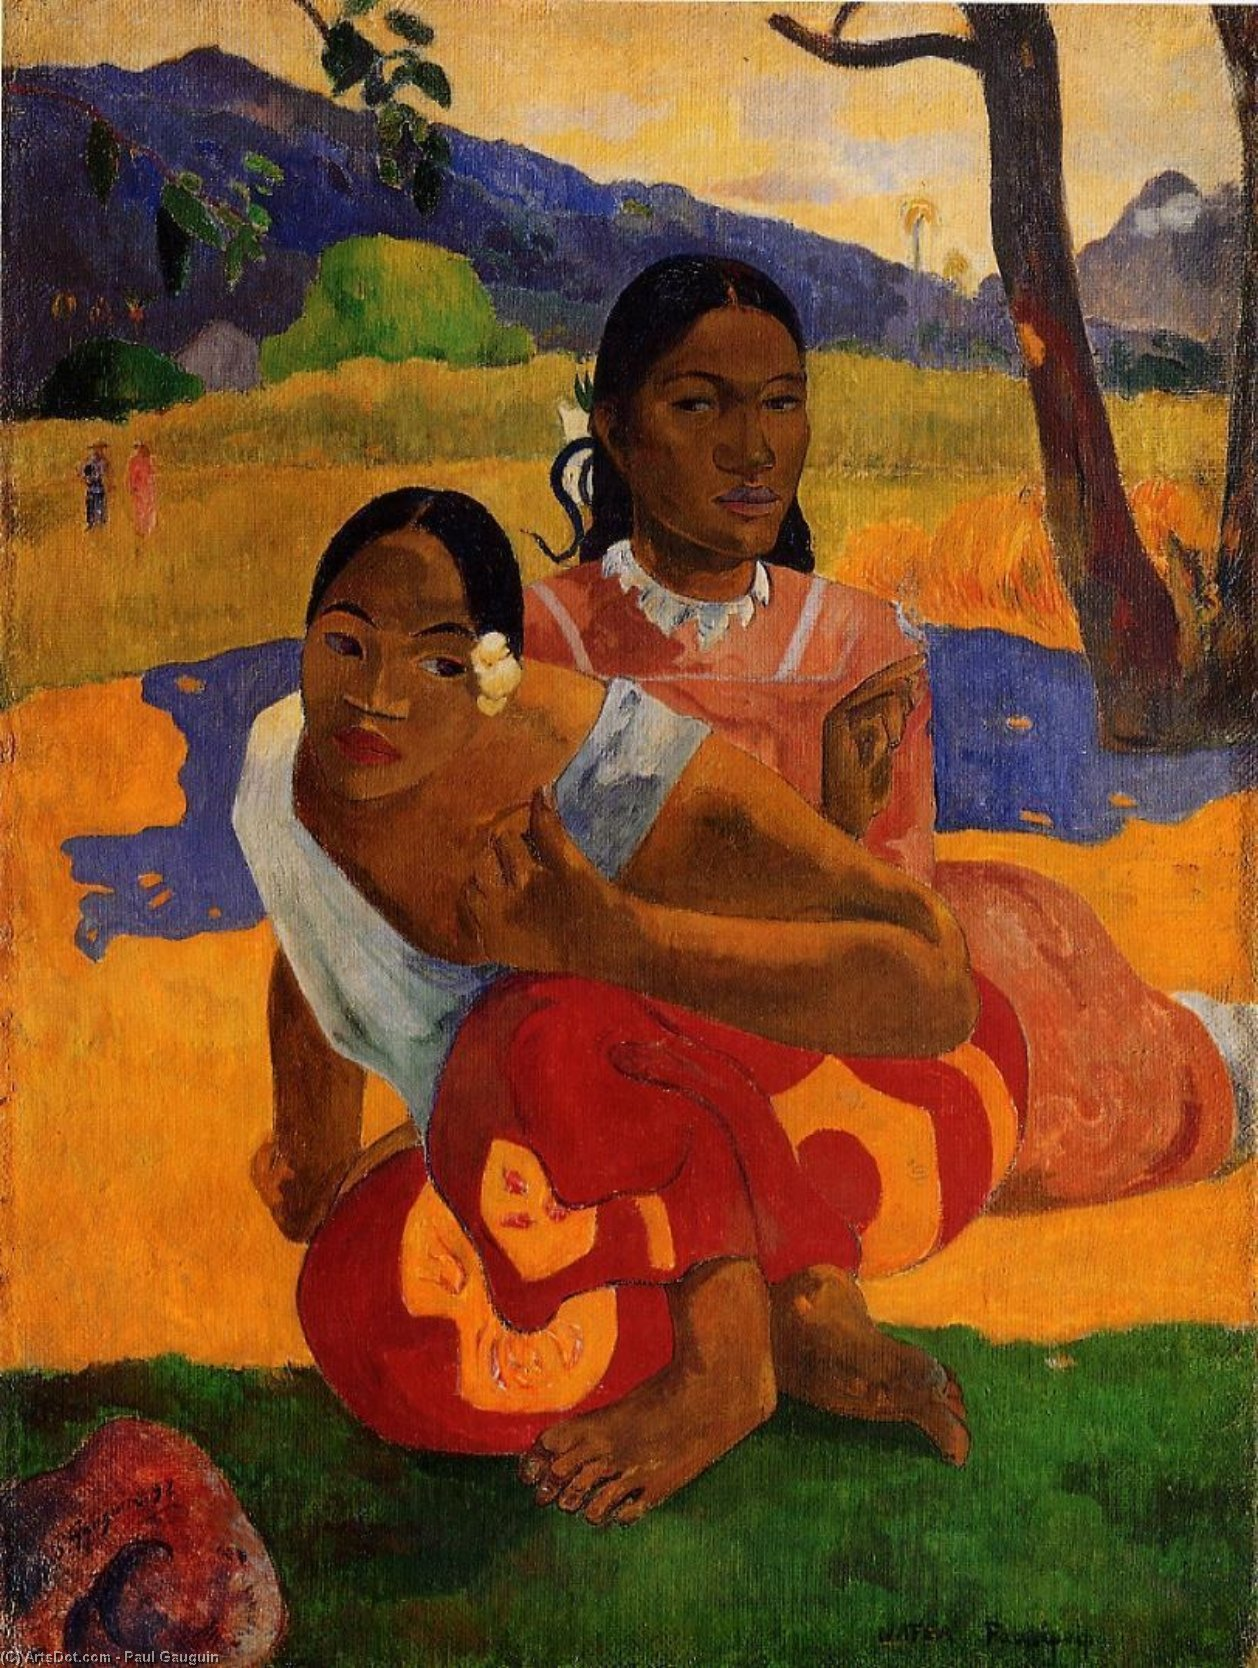 Wikioo.org - The Encyclopedia of Fine Arts - Painting, Artwork by Paul Gauguin - Nafeaffaa Ipolpo (also known as When Will You Marry?)